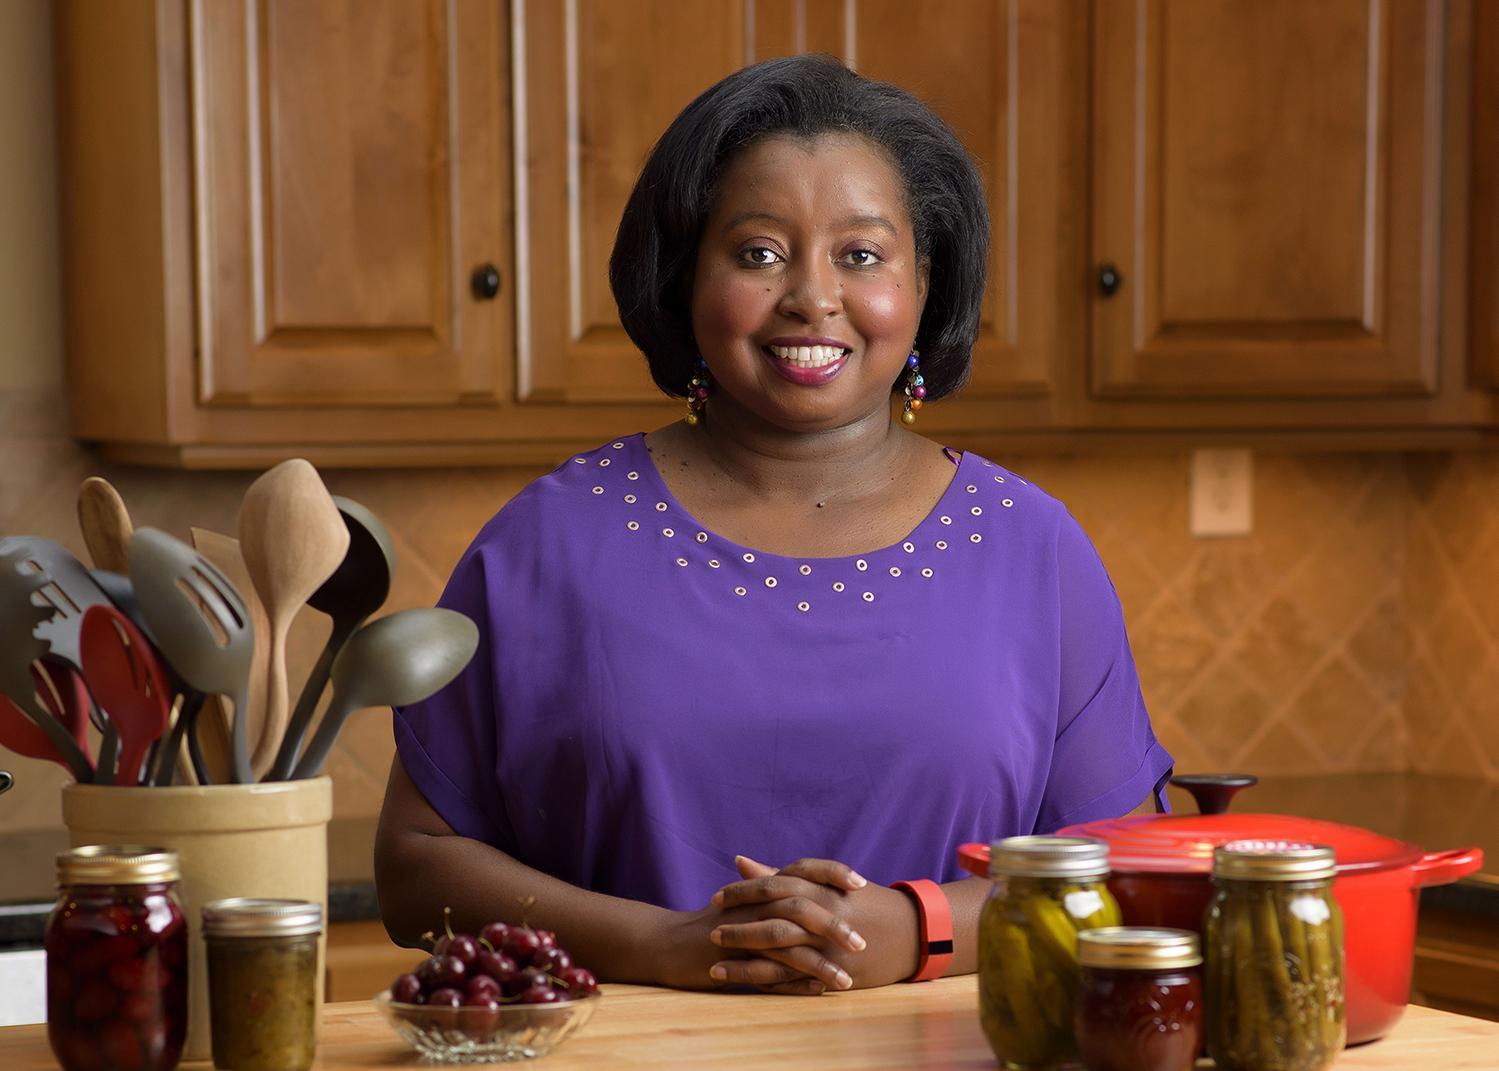 MSU Extension Agent Natasha Haynes, an African American woman with chin-length straight black hair stands behind a kitchen table displaying a crock of kitchen utensils, a red pot, and assorted home-canned and fresh fruits and vegetables.